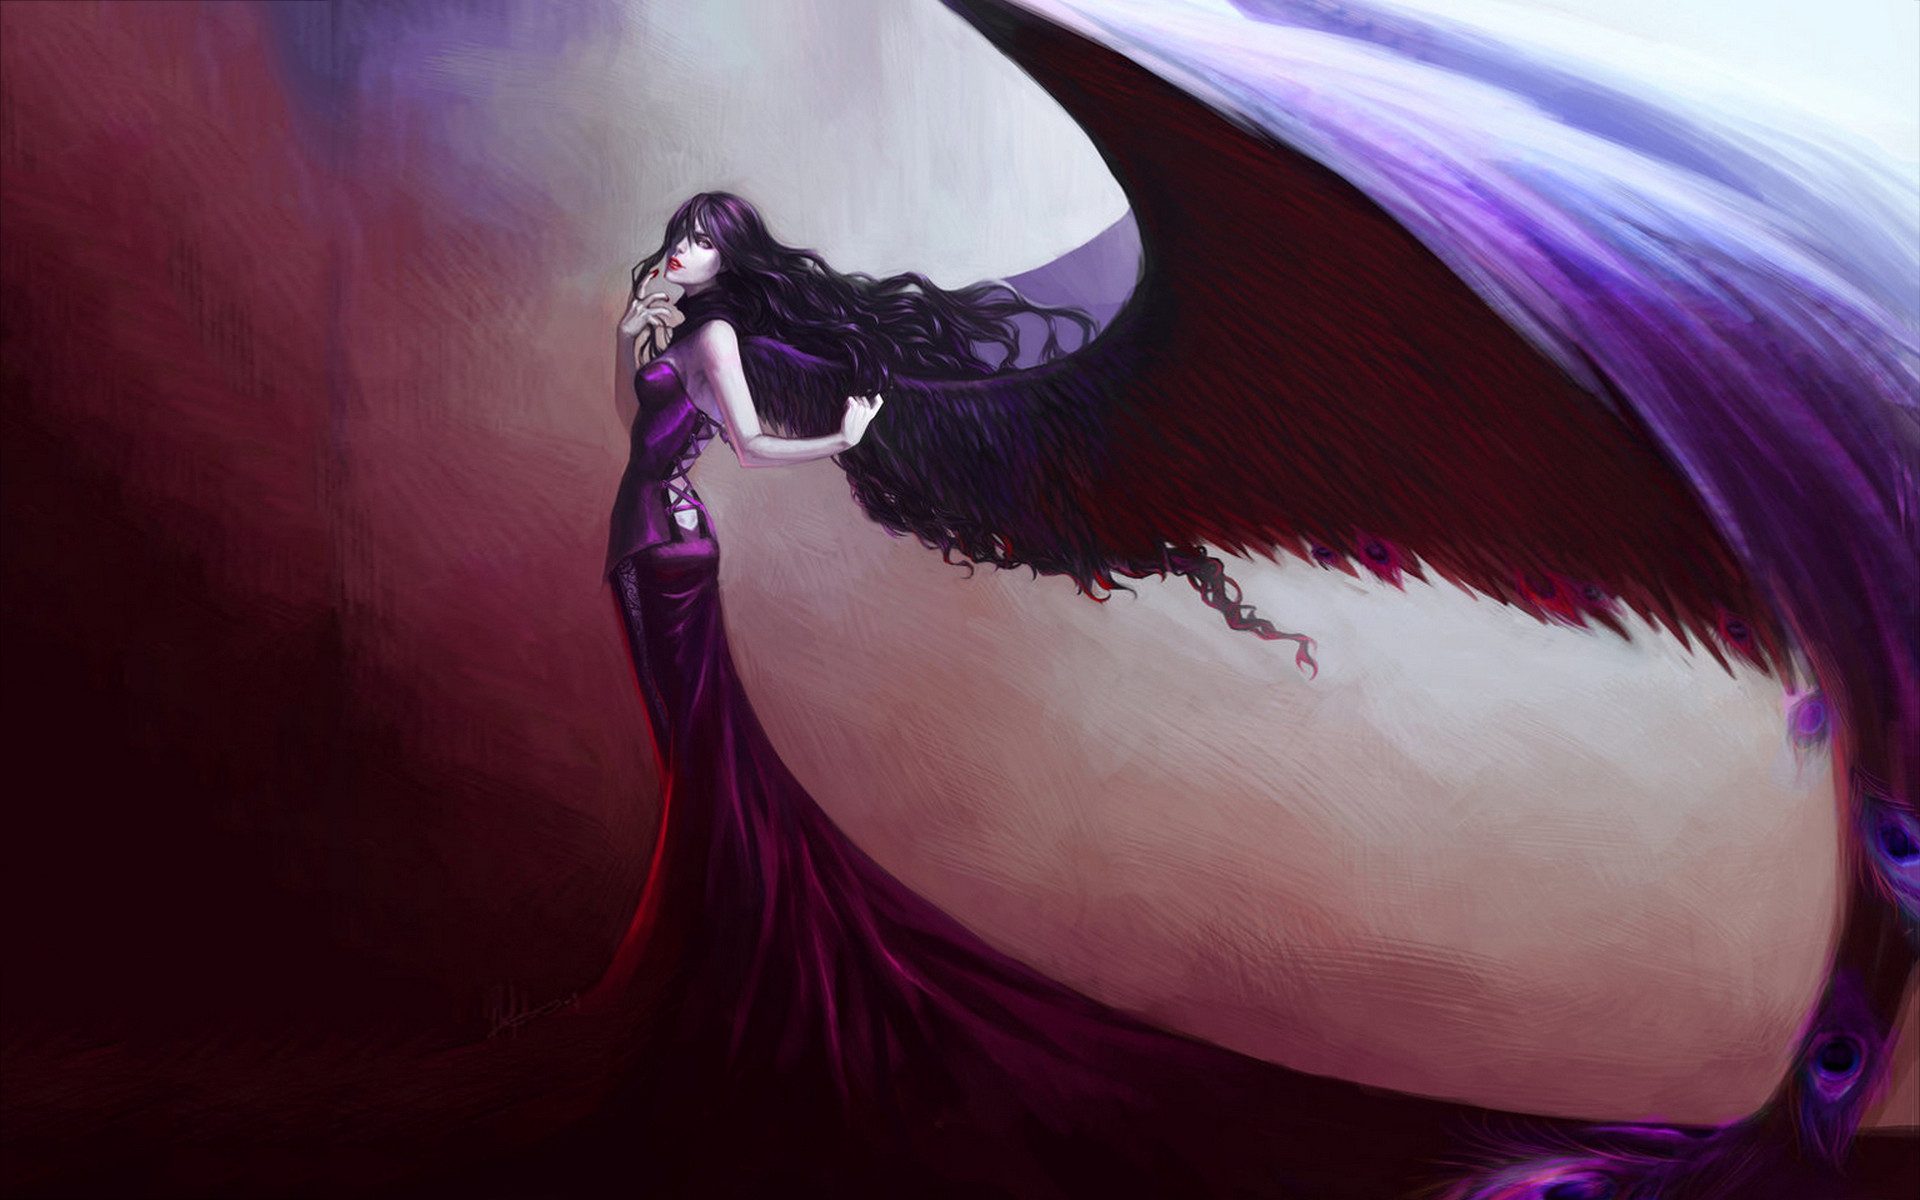 Anime Gothic Angel Wallpaper 61 Images